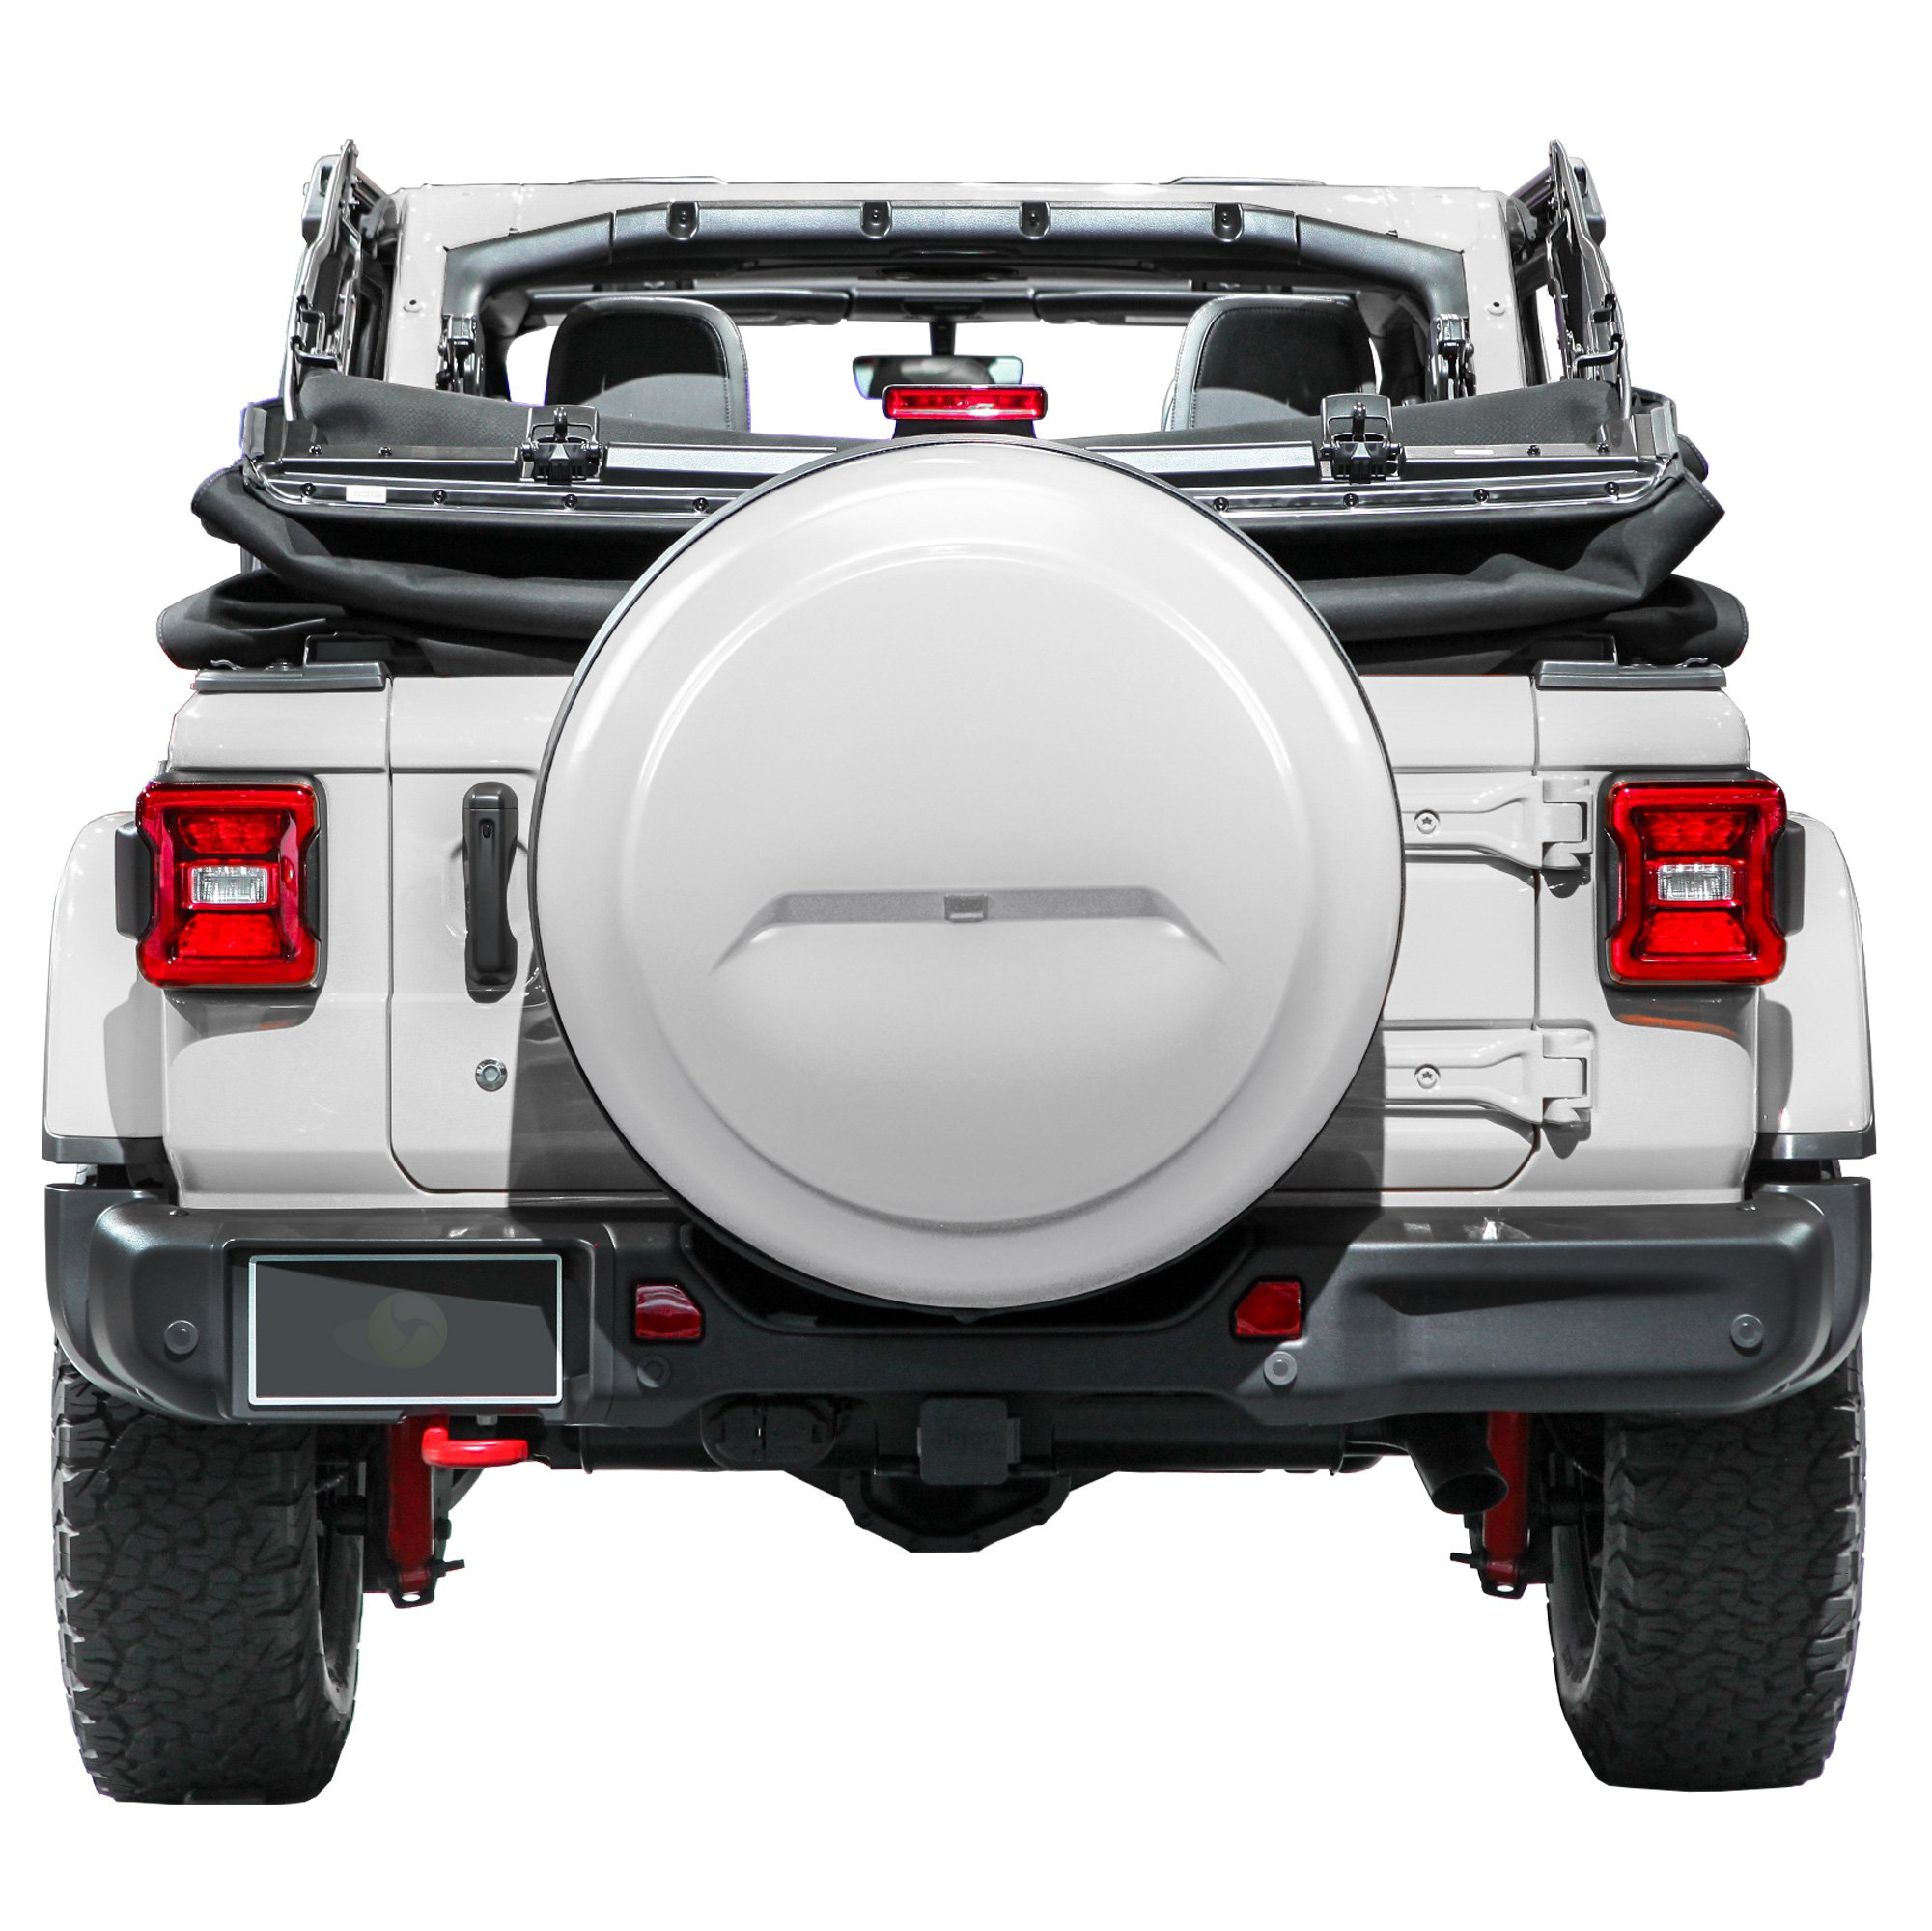 2018 Jeep Wrangler JL & JLU - 32'' Color Matched Rigid Tire Cover (Plastic Face & Vinyl Band) - Bright White